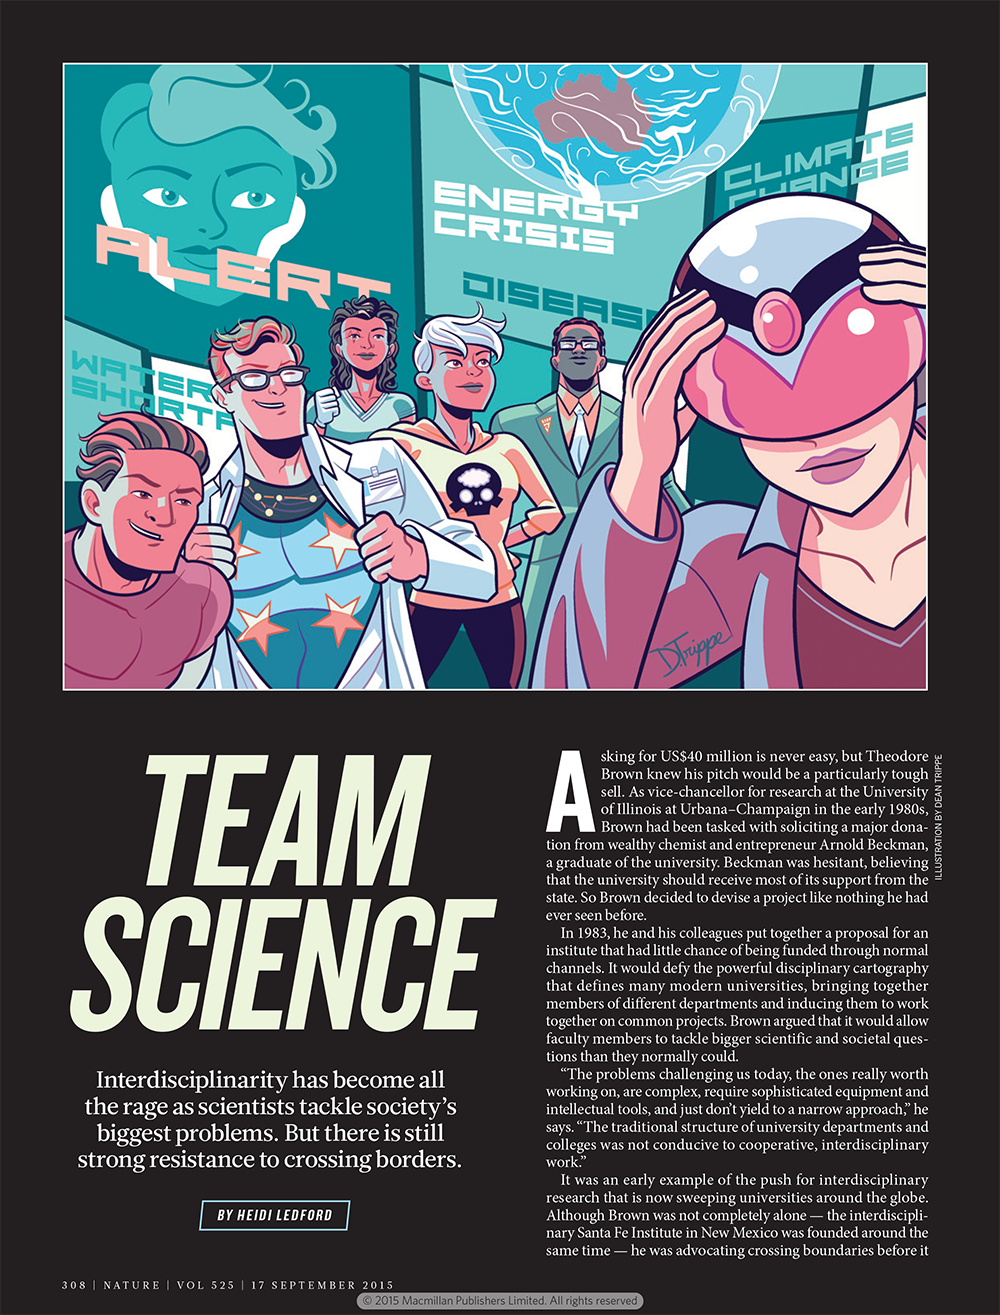 An image of the first page of Nature's article on interdisciplinary scientific research, featuring the Beckman Institute